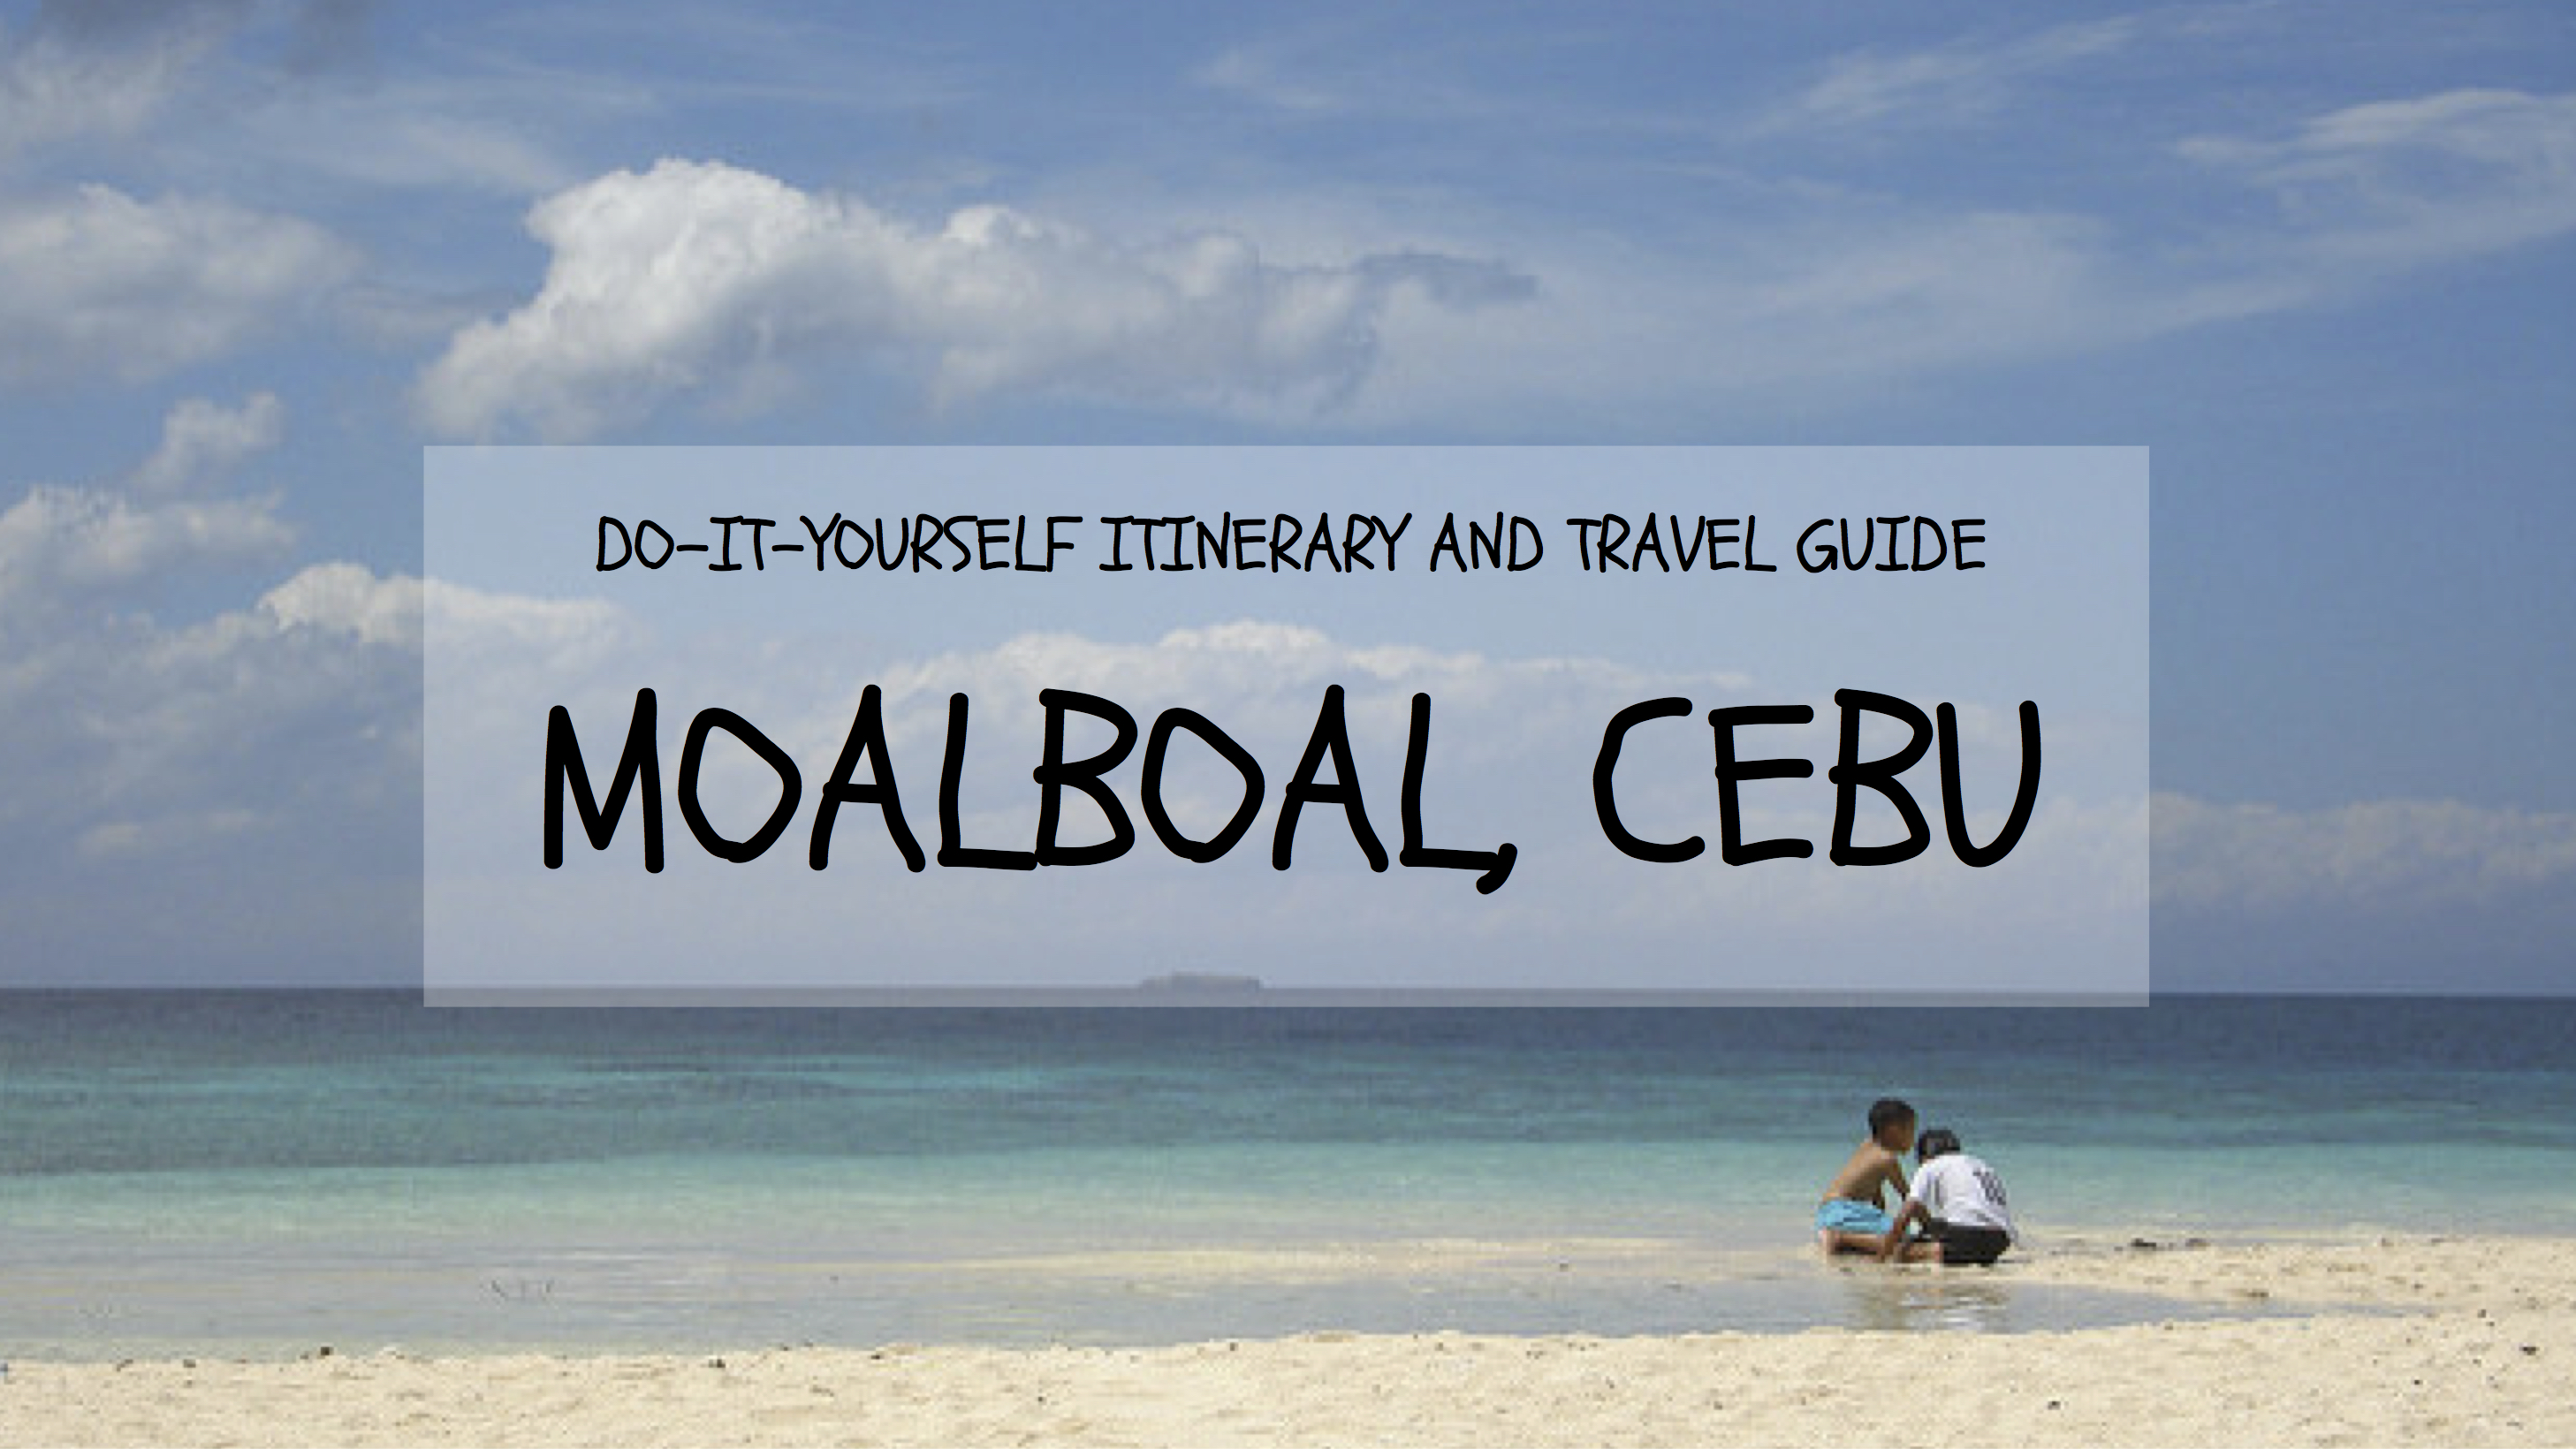 Diy Itinerary And Travel Guide Things To Do In Moalboal